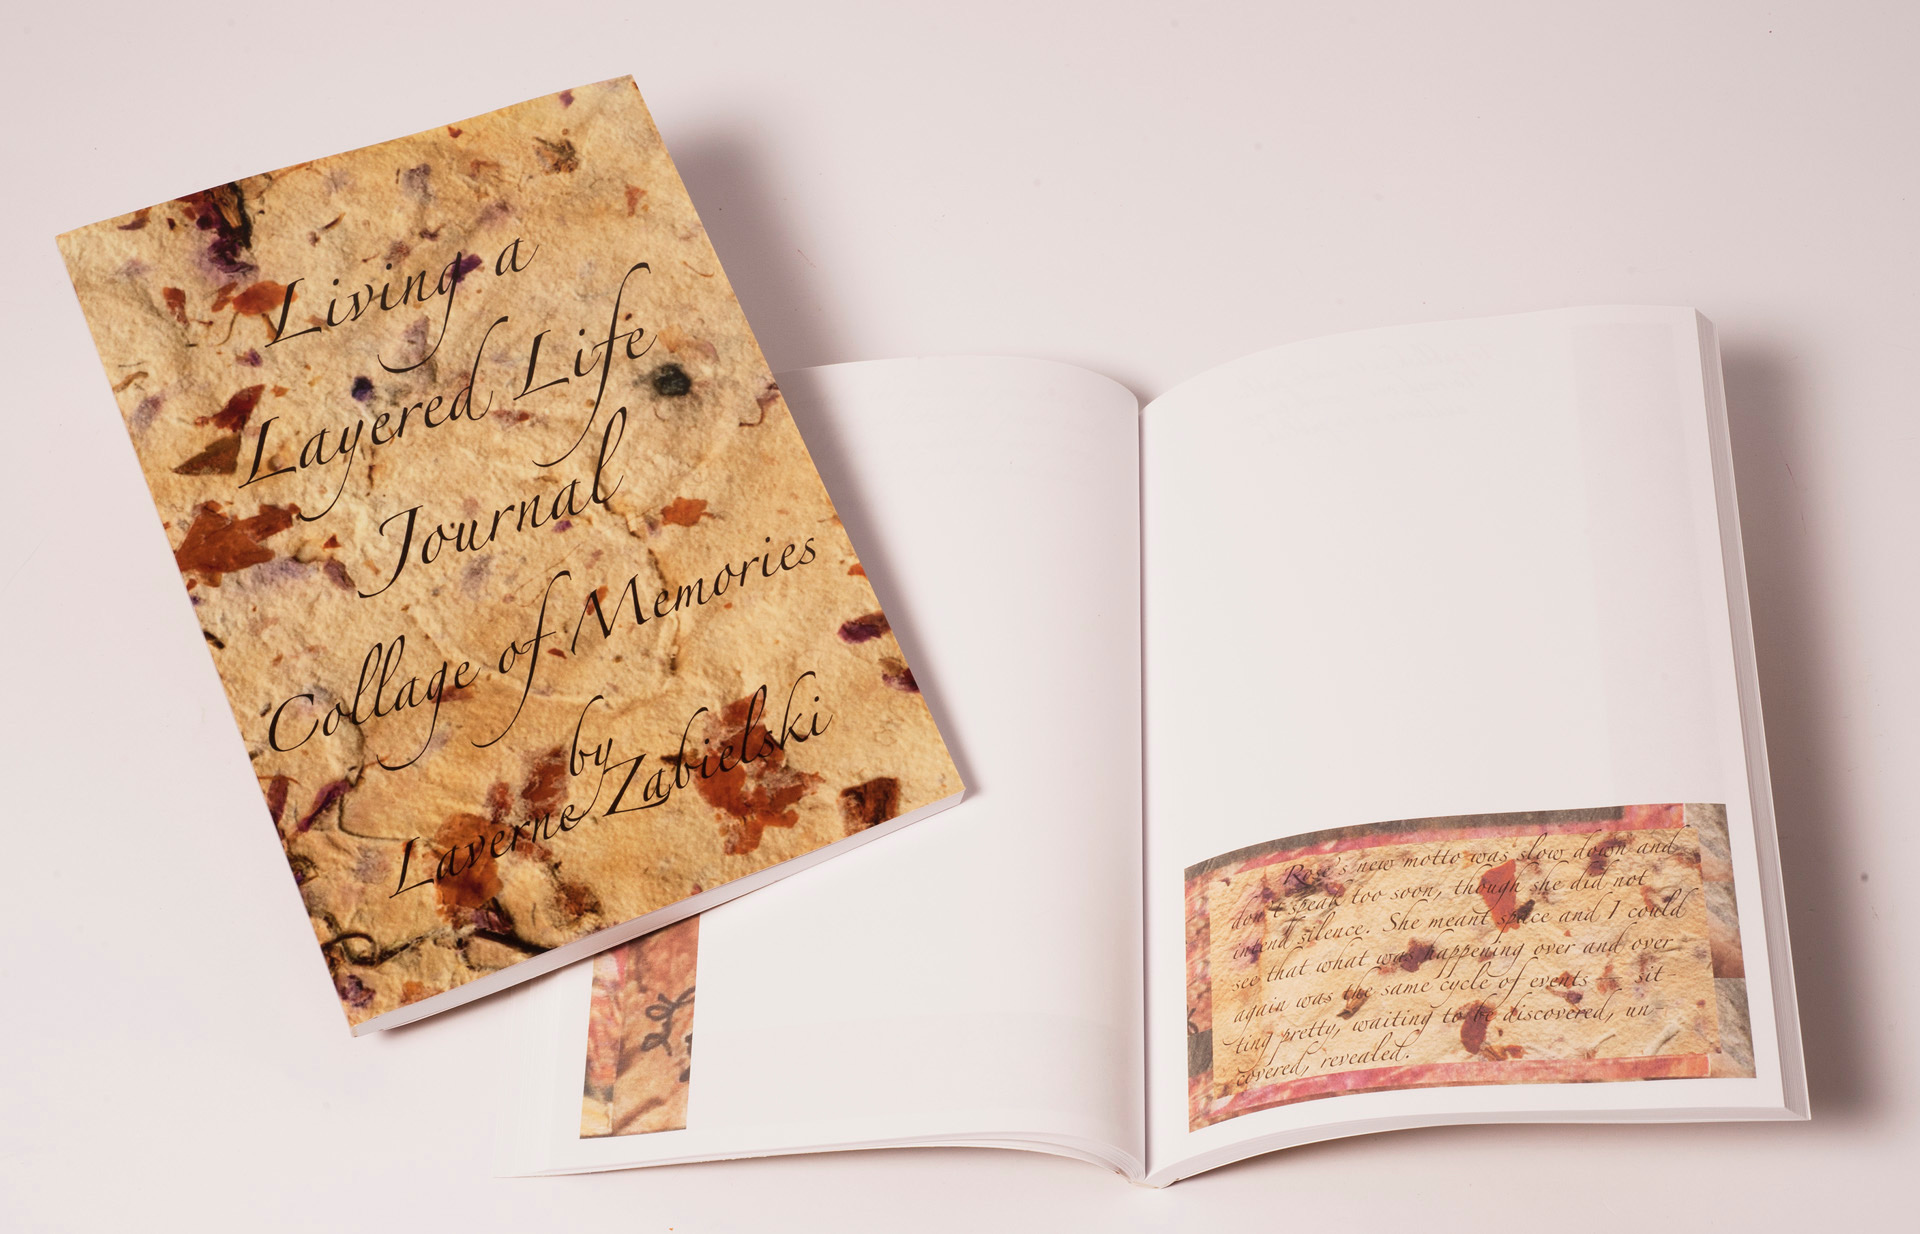 a journal with prompts